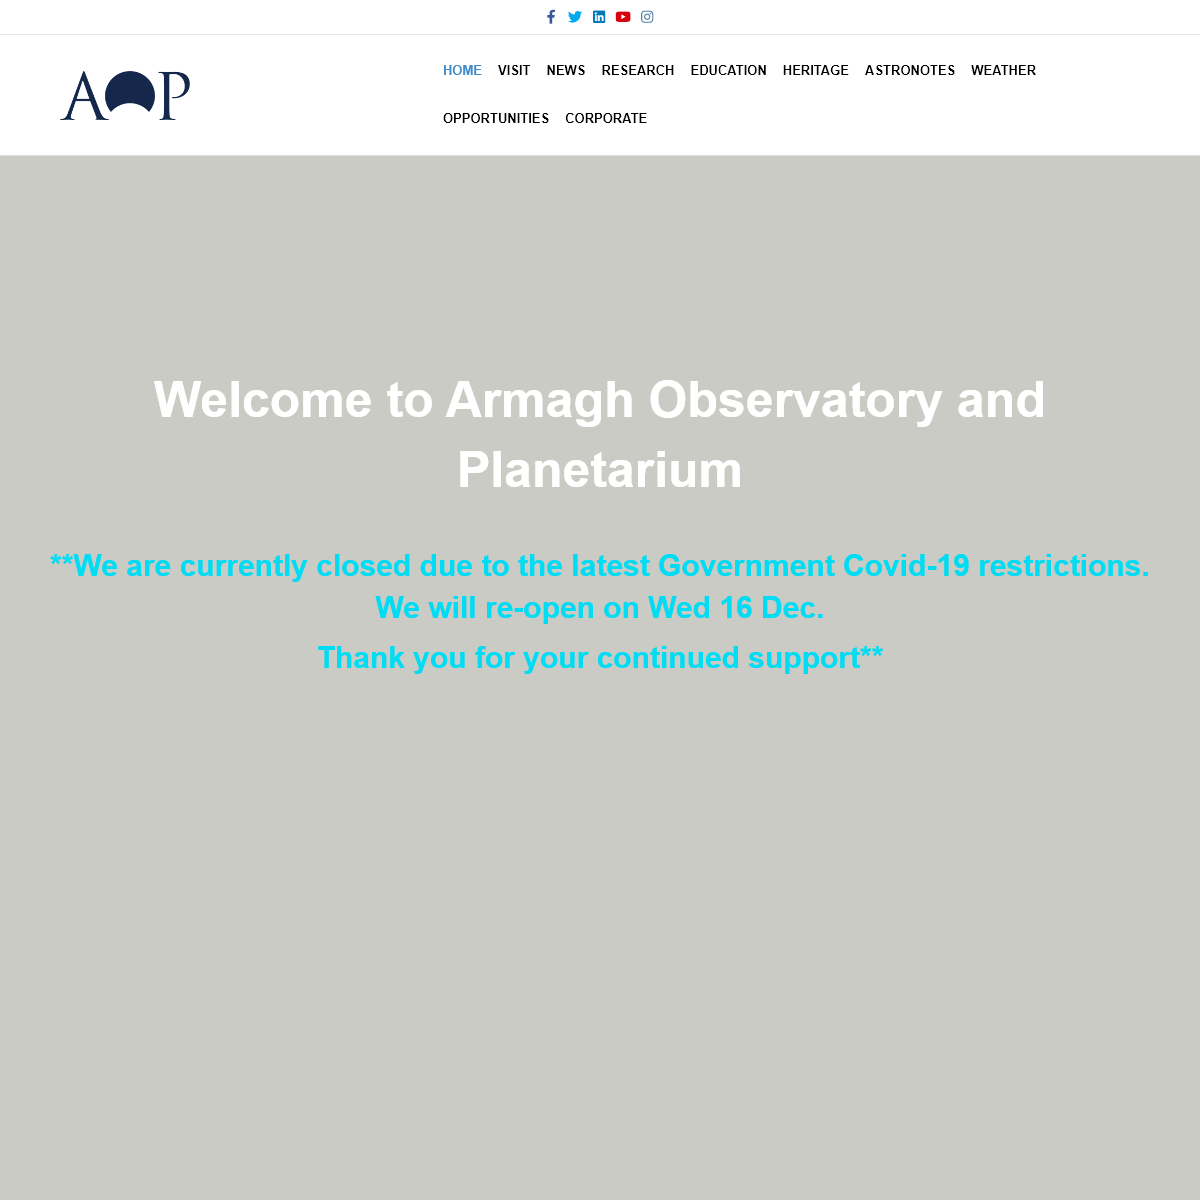 AOP – Armagh Observatory and Planetarium